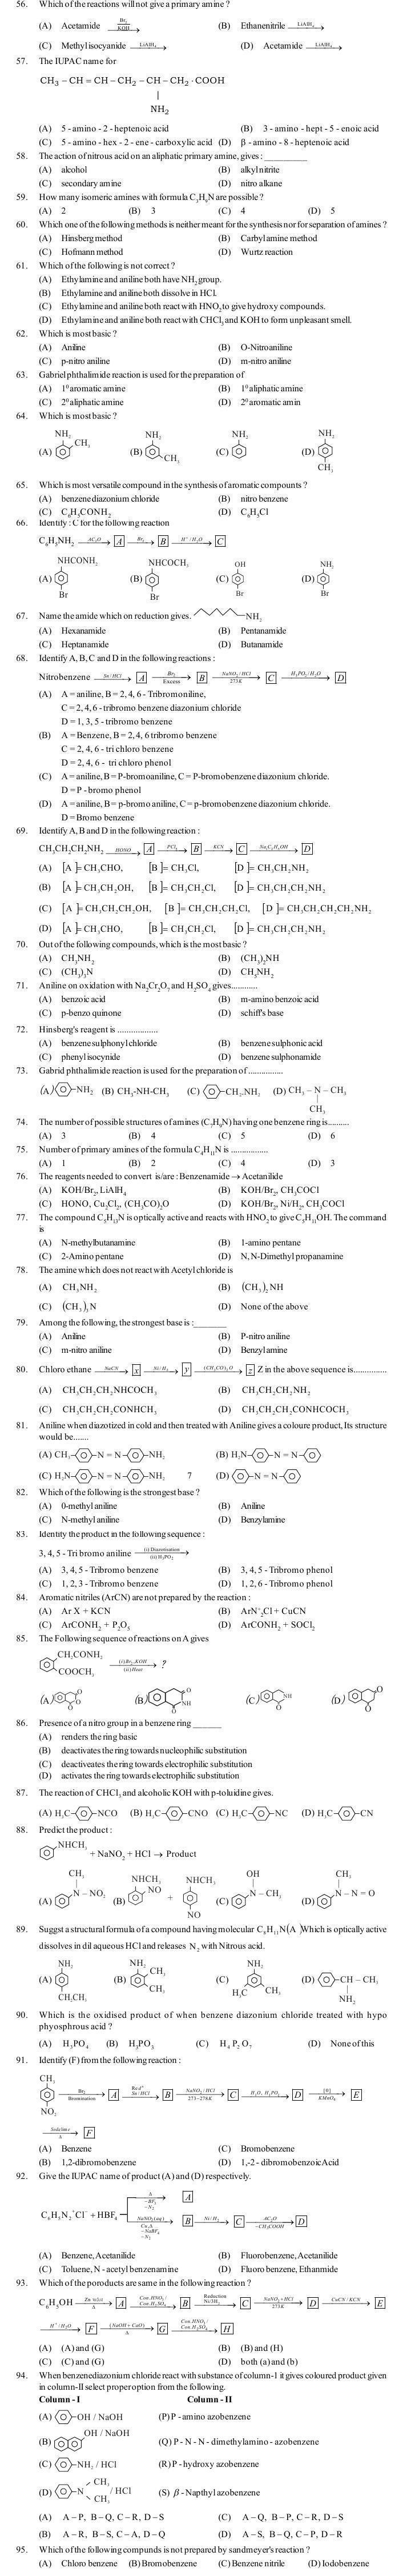 JEE and AIPMT Question Bank: Chemistry - Organic Compounds Containing Nitrogen